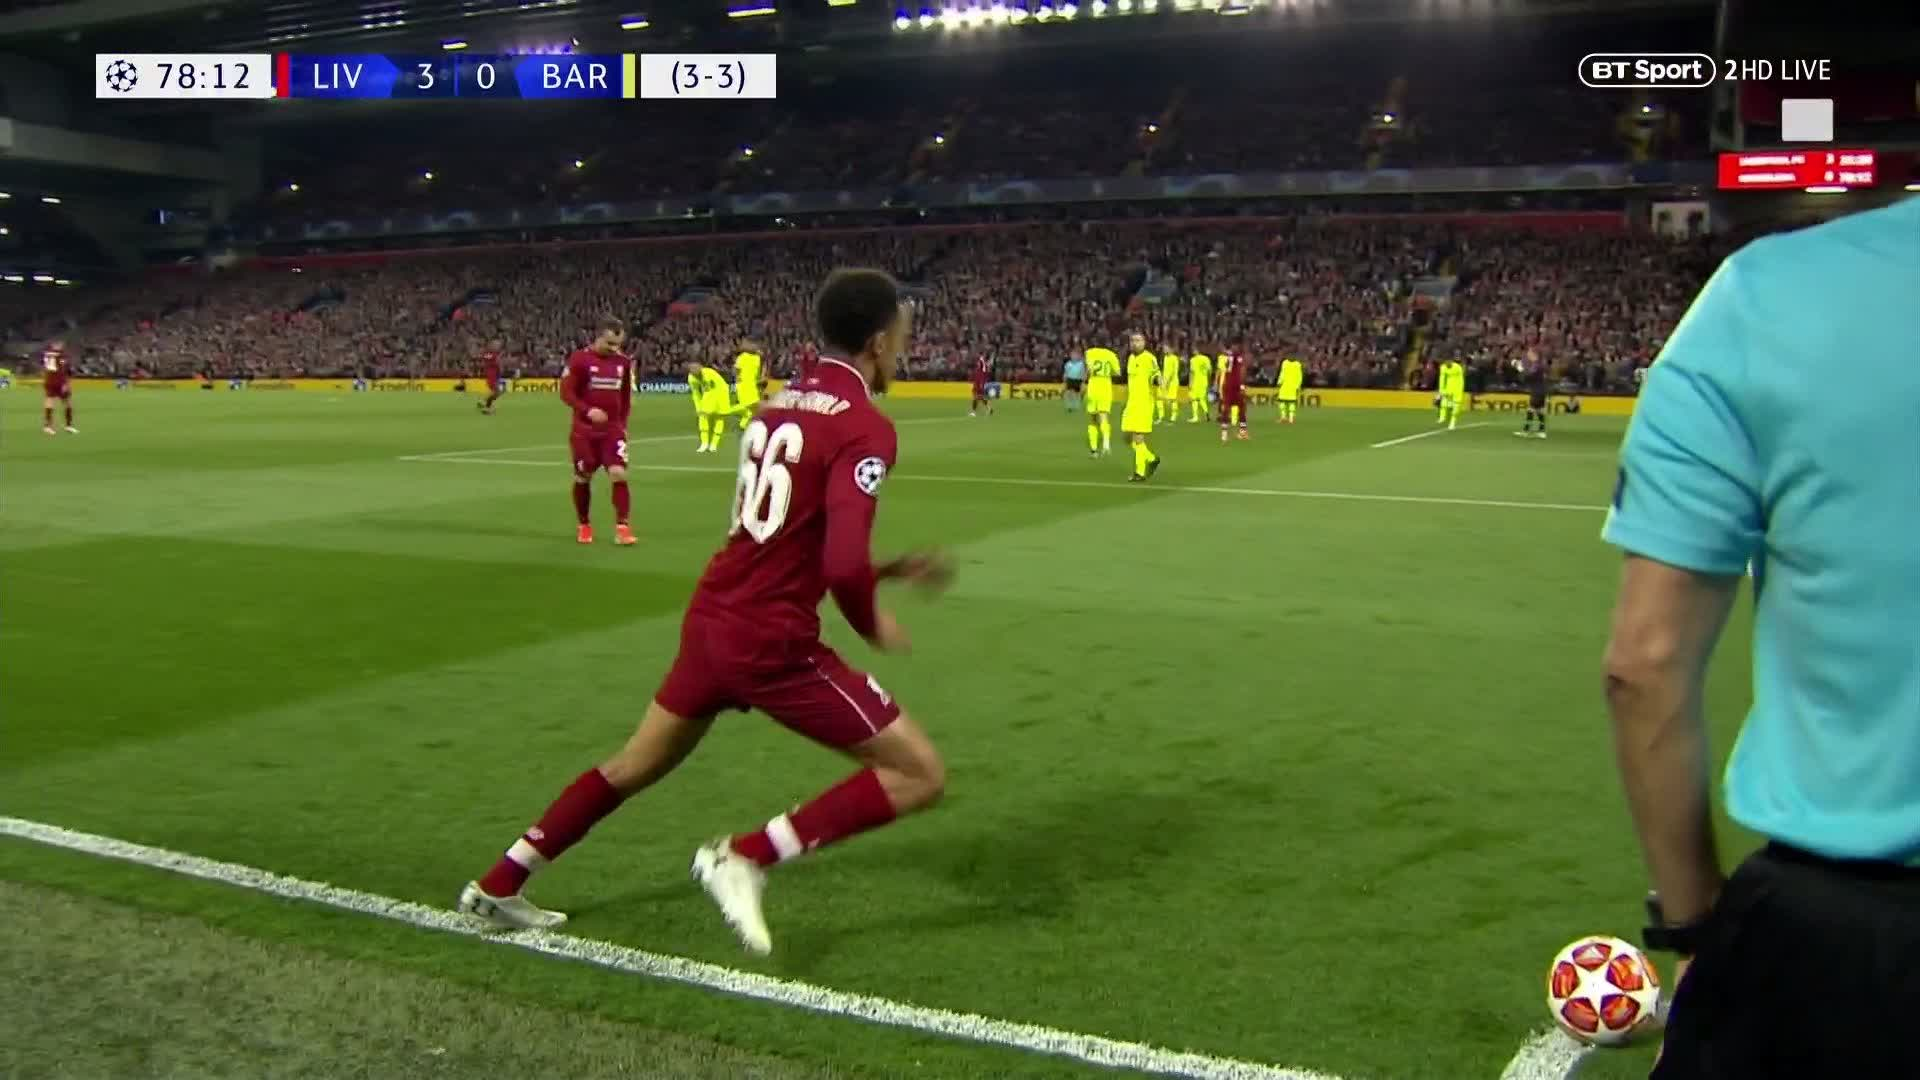 SIMPLY GENIUS 🤯  Trent Alexander-Arnold spots Barcelona napping and Divock Origi makes no mistake!!!  4-0 Liverpool 😱  Wow. https://t.co/K05v1jgazZ